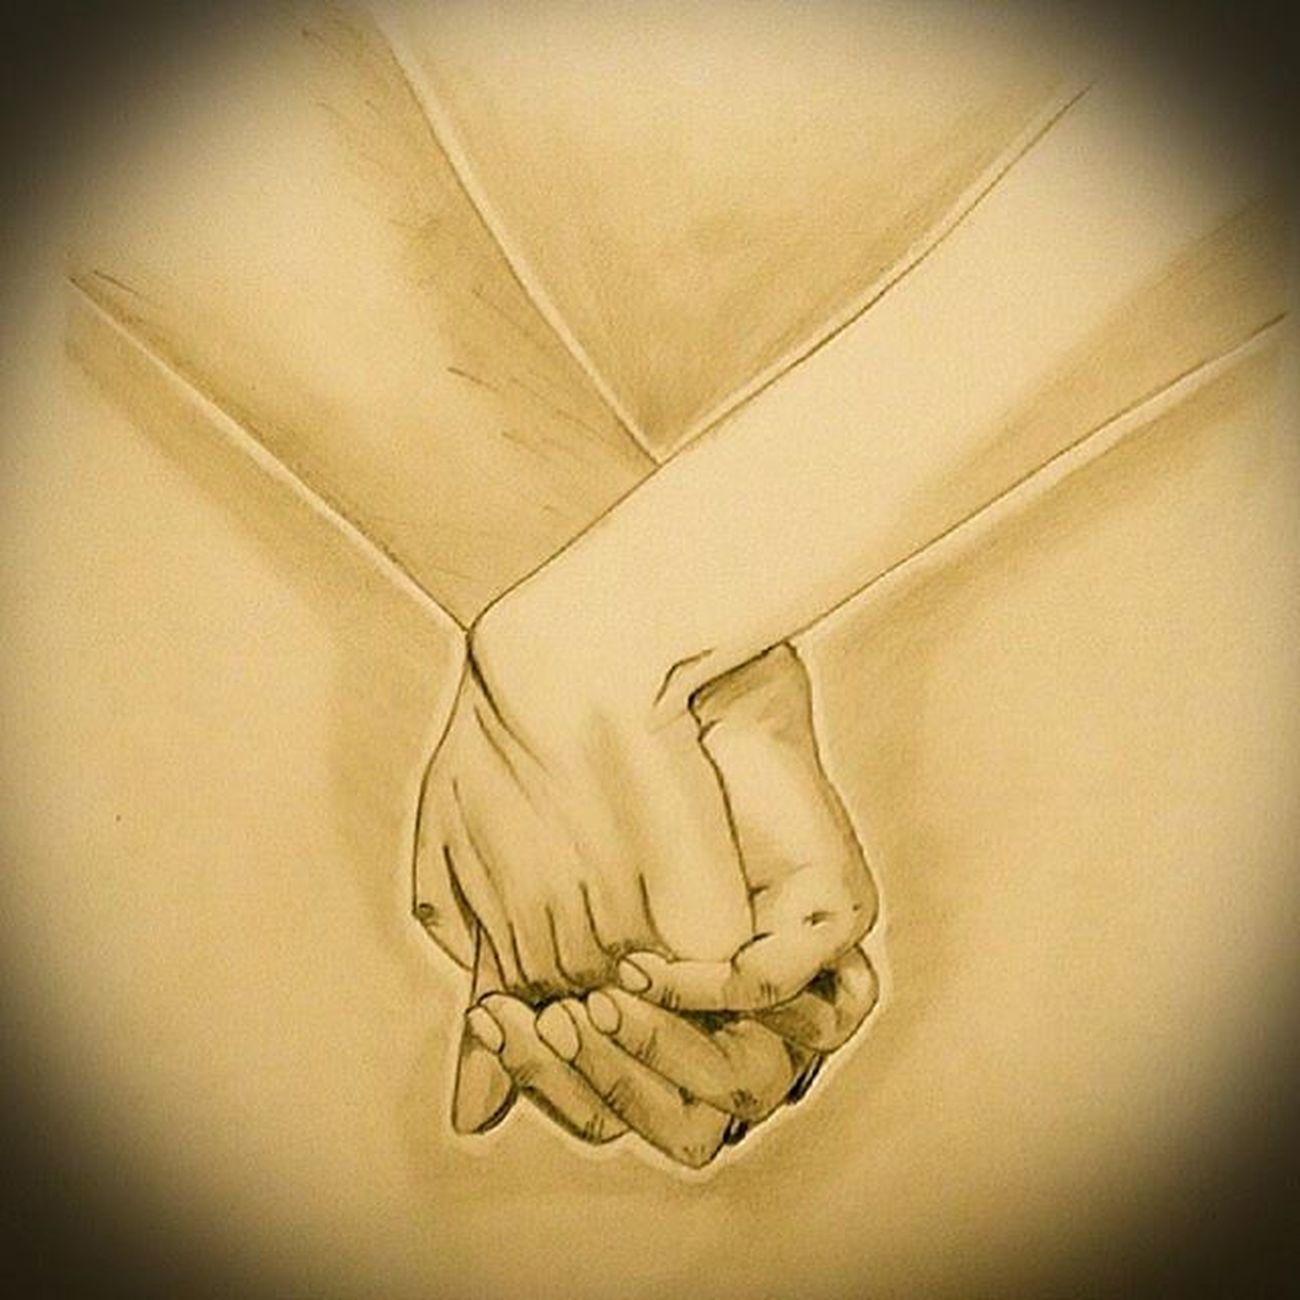 Forsomeonespecial Masterpiece ArtWork Sketchaday Momentofthelife Feelings Capturedmoments Innerpeace No captions needed for this sketch... You have to just feel ur heart and the feelings this sketch portraits :-) Just wanted to day... YOU may hold my hand for a while,.... But YOU hold my HEART forever !! ;);)